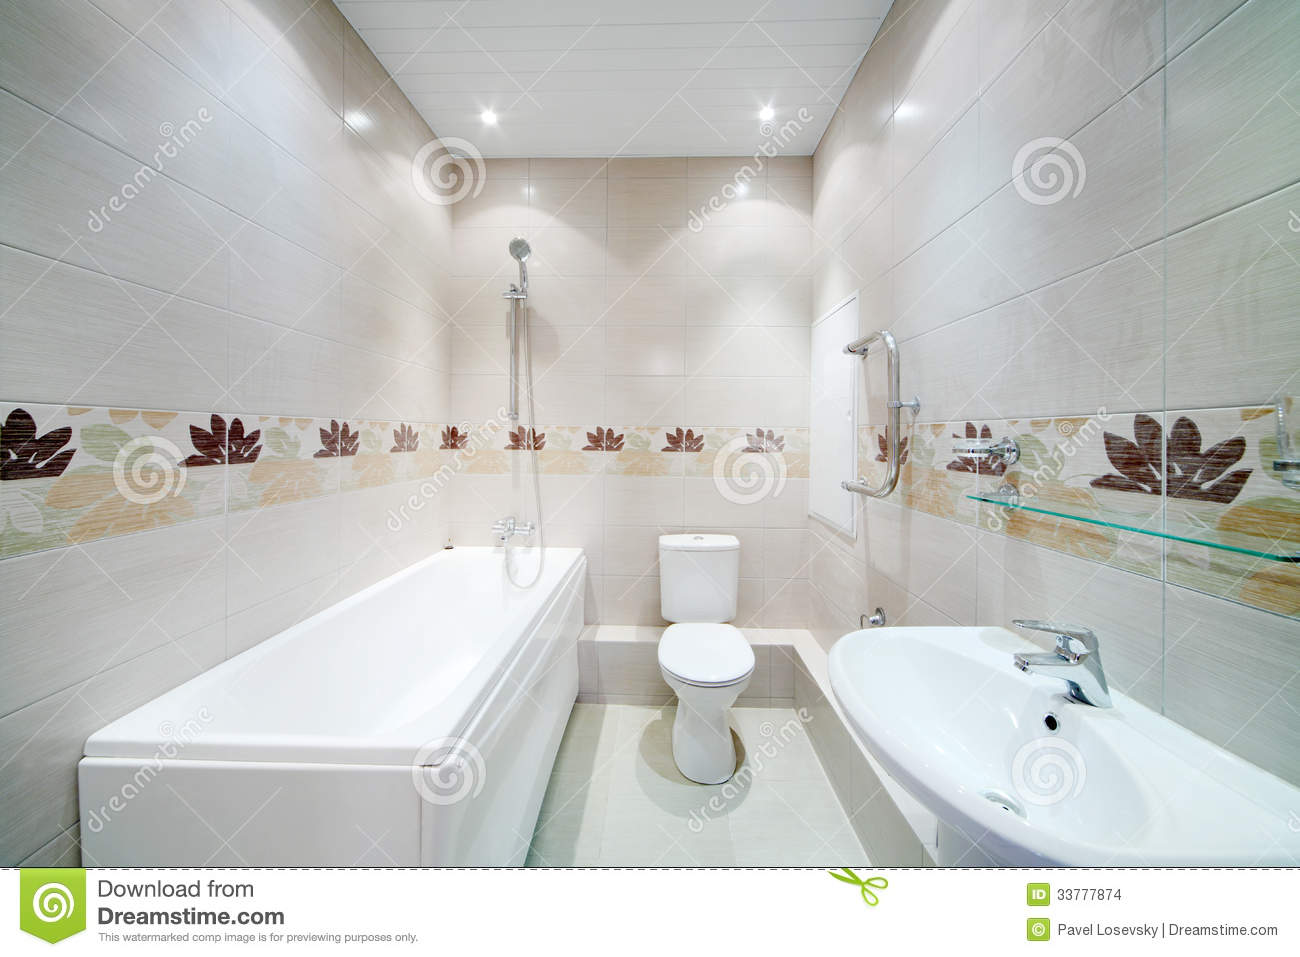 Clean bathroom with toilet with simple grey tiles stock for Easy clean bathroom design